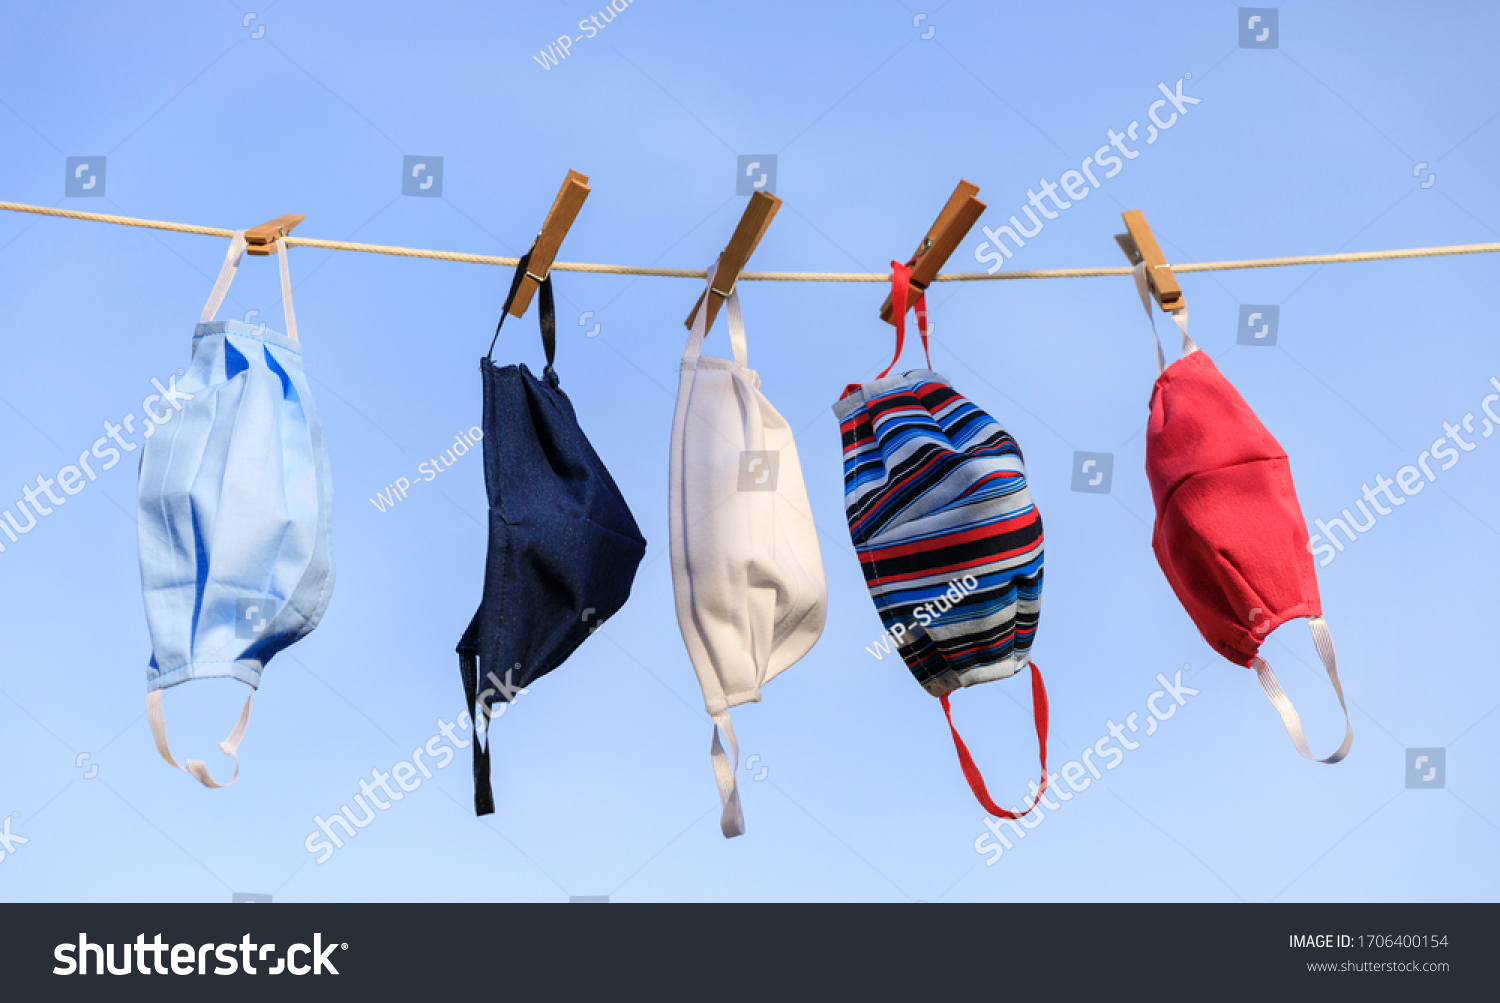 Drying mask hanging under the sun after use for disinfecting. Hygienic mask hanging on the rack outdoor after being washed for cleanness and hygiene during Covid-19 virus outbreak #1706400154